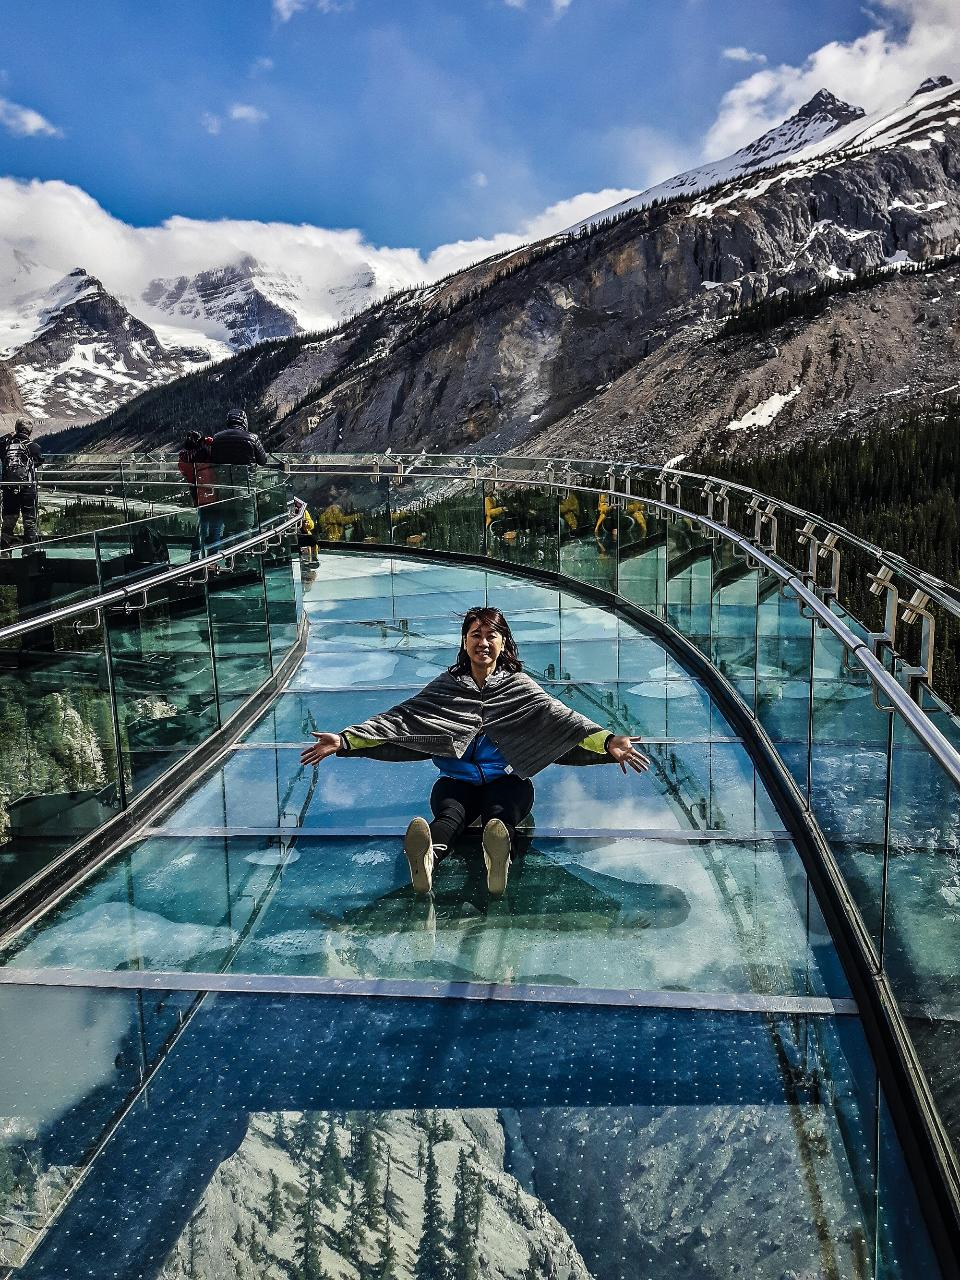 5 Days 4 Nights Canmore - Banff - Jasper Experience Including Accommodation